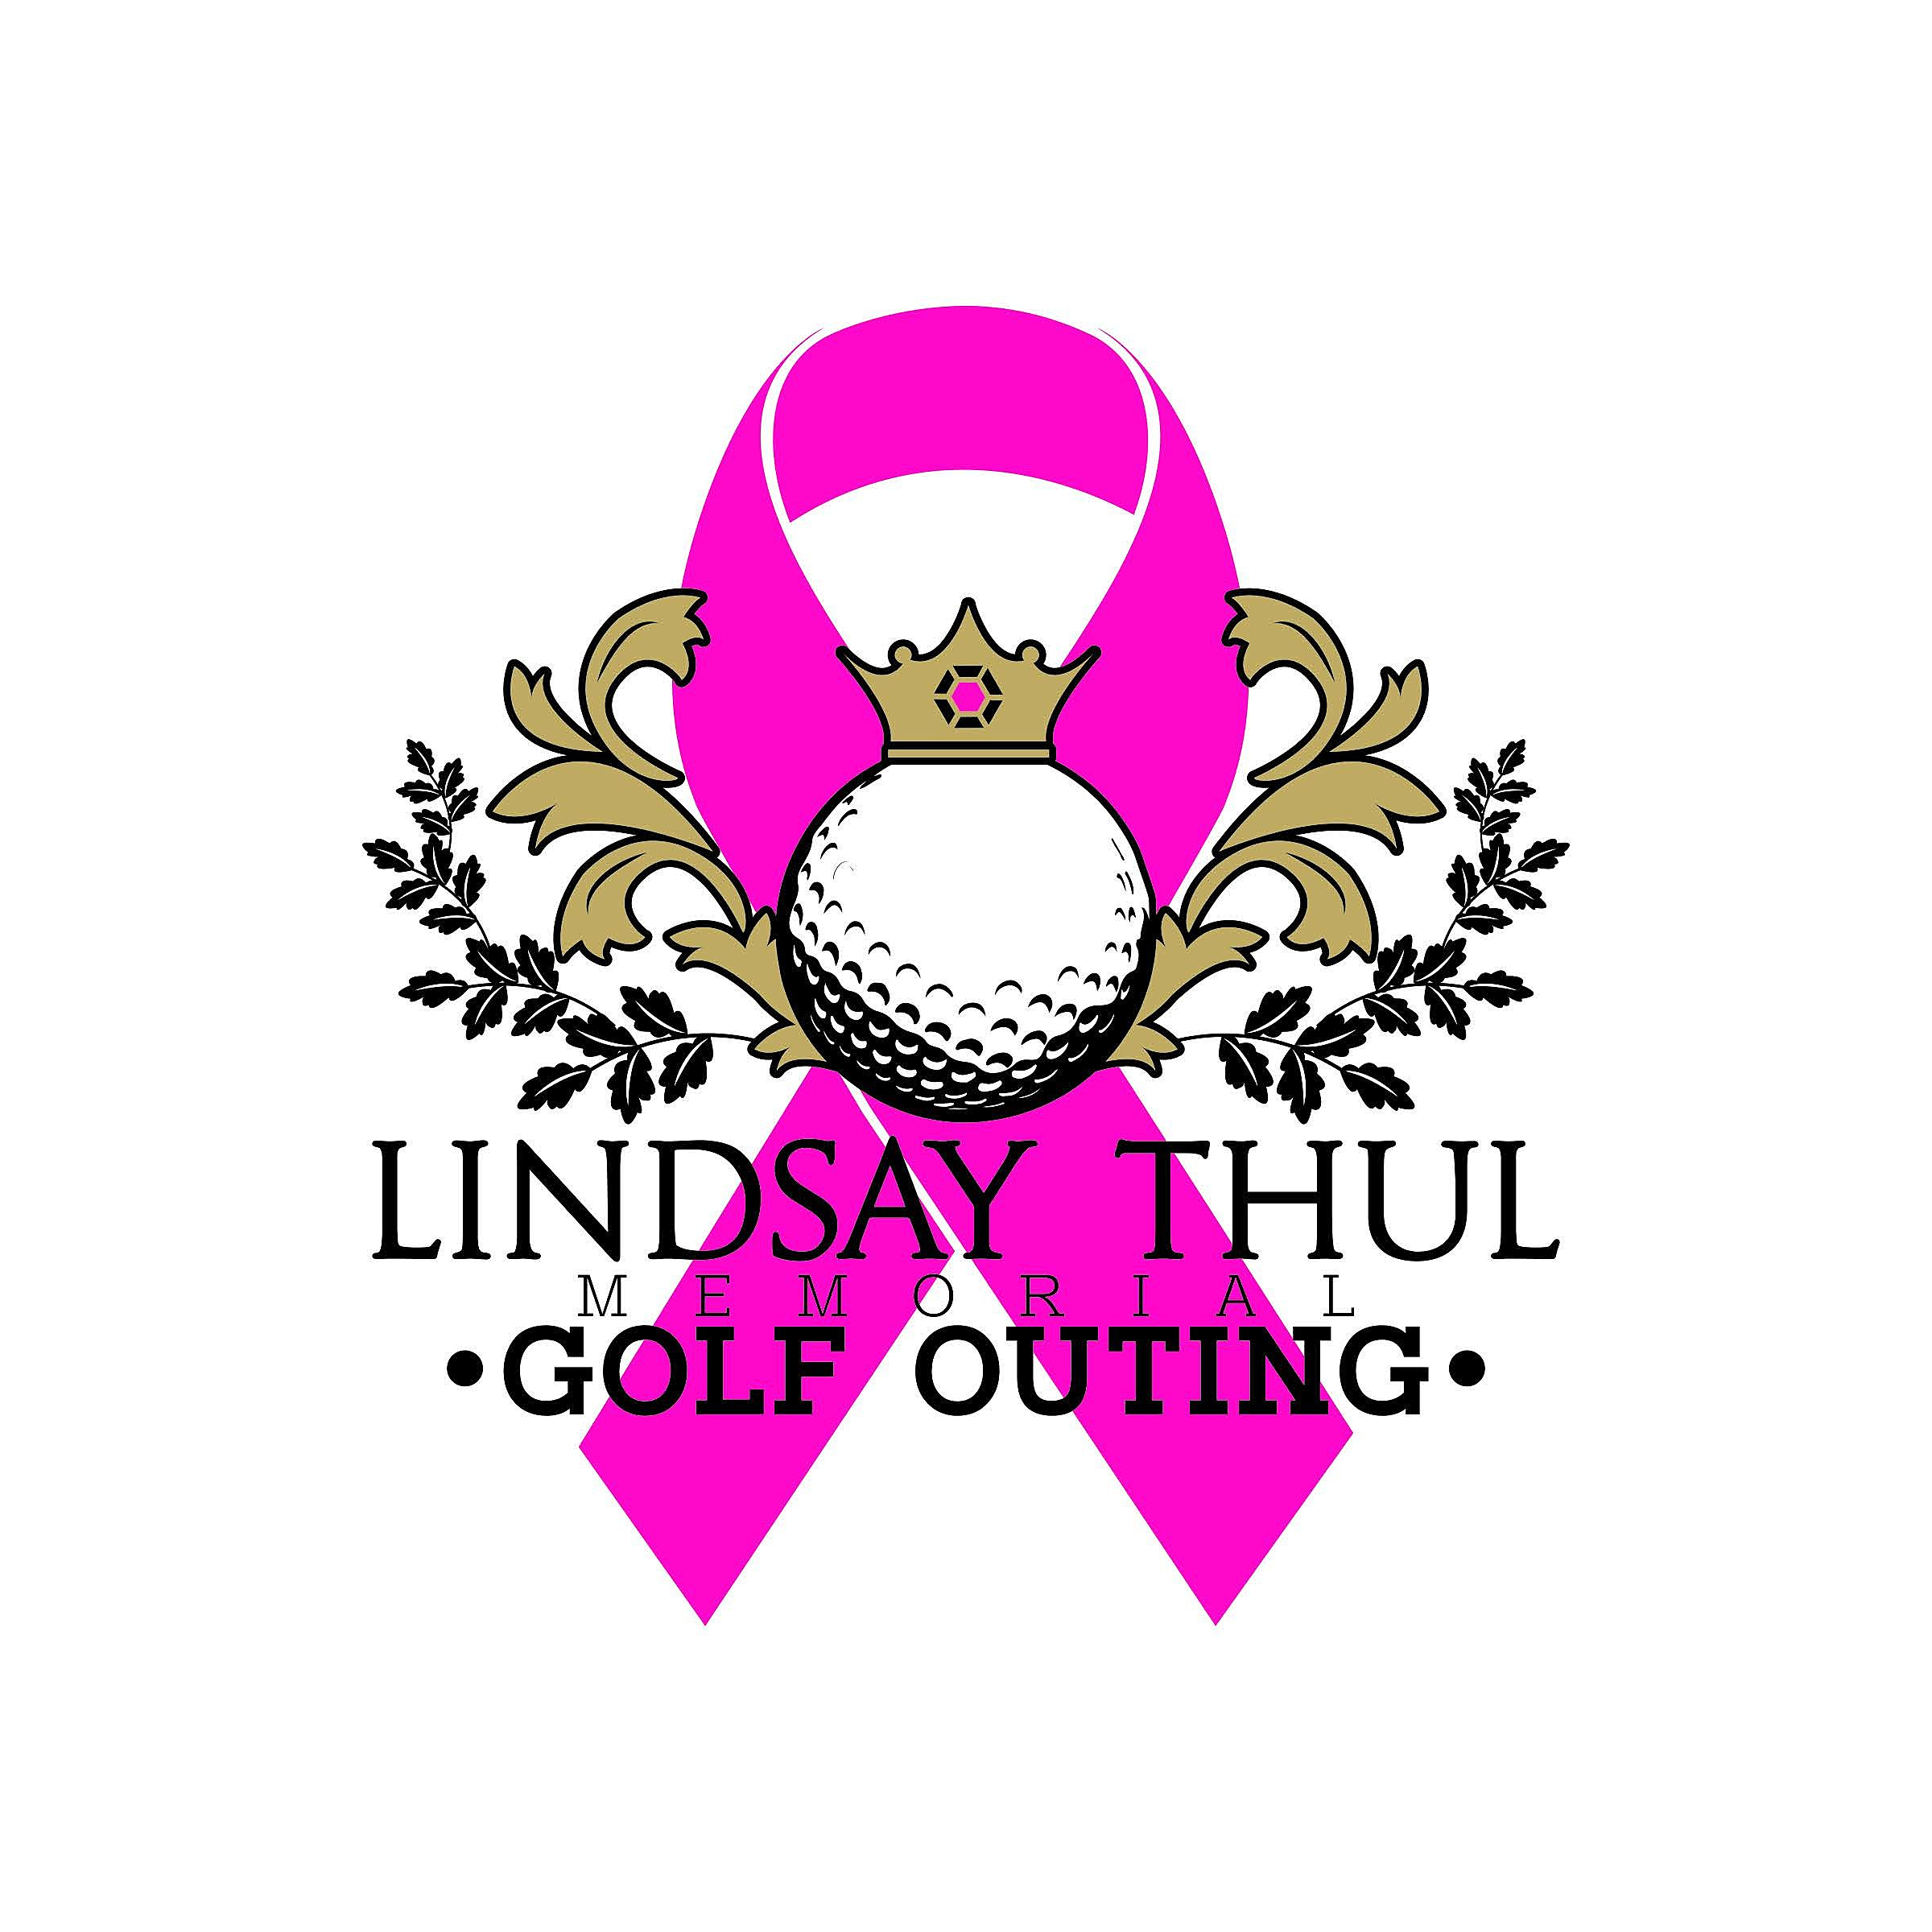 Lindsay Thul Memorial Golf  Outing/Diane Koster Facebook